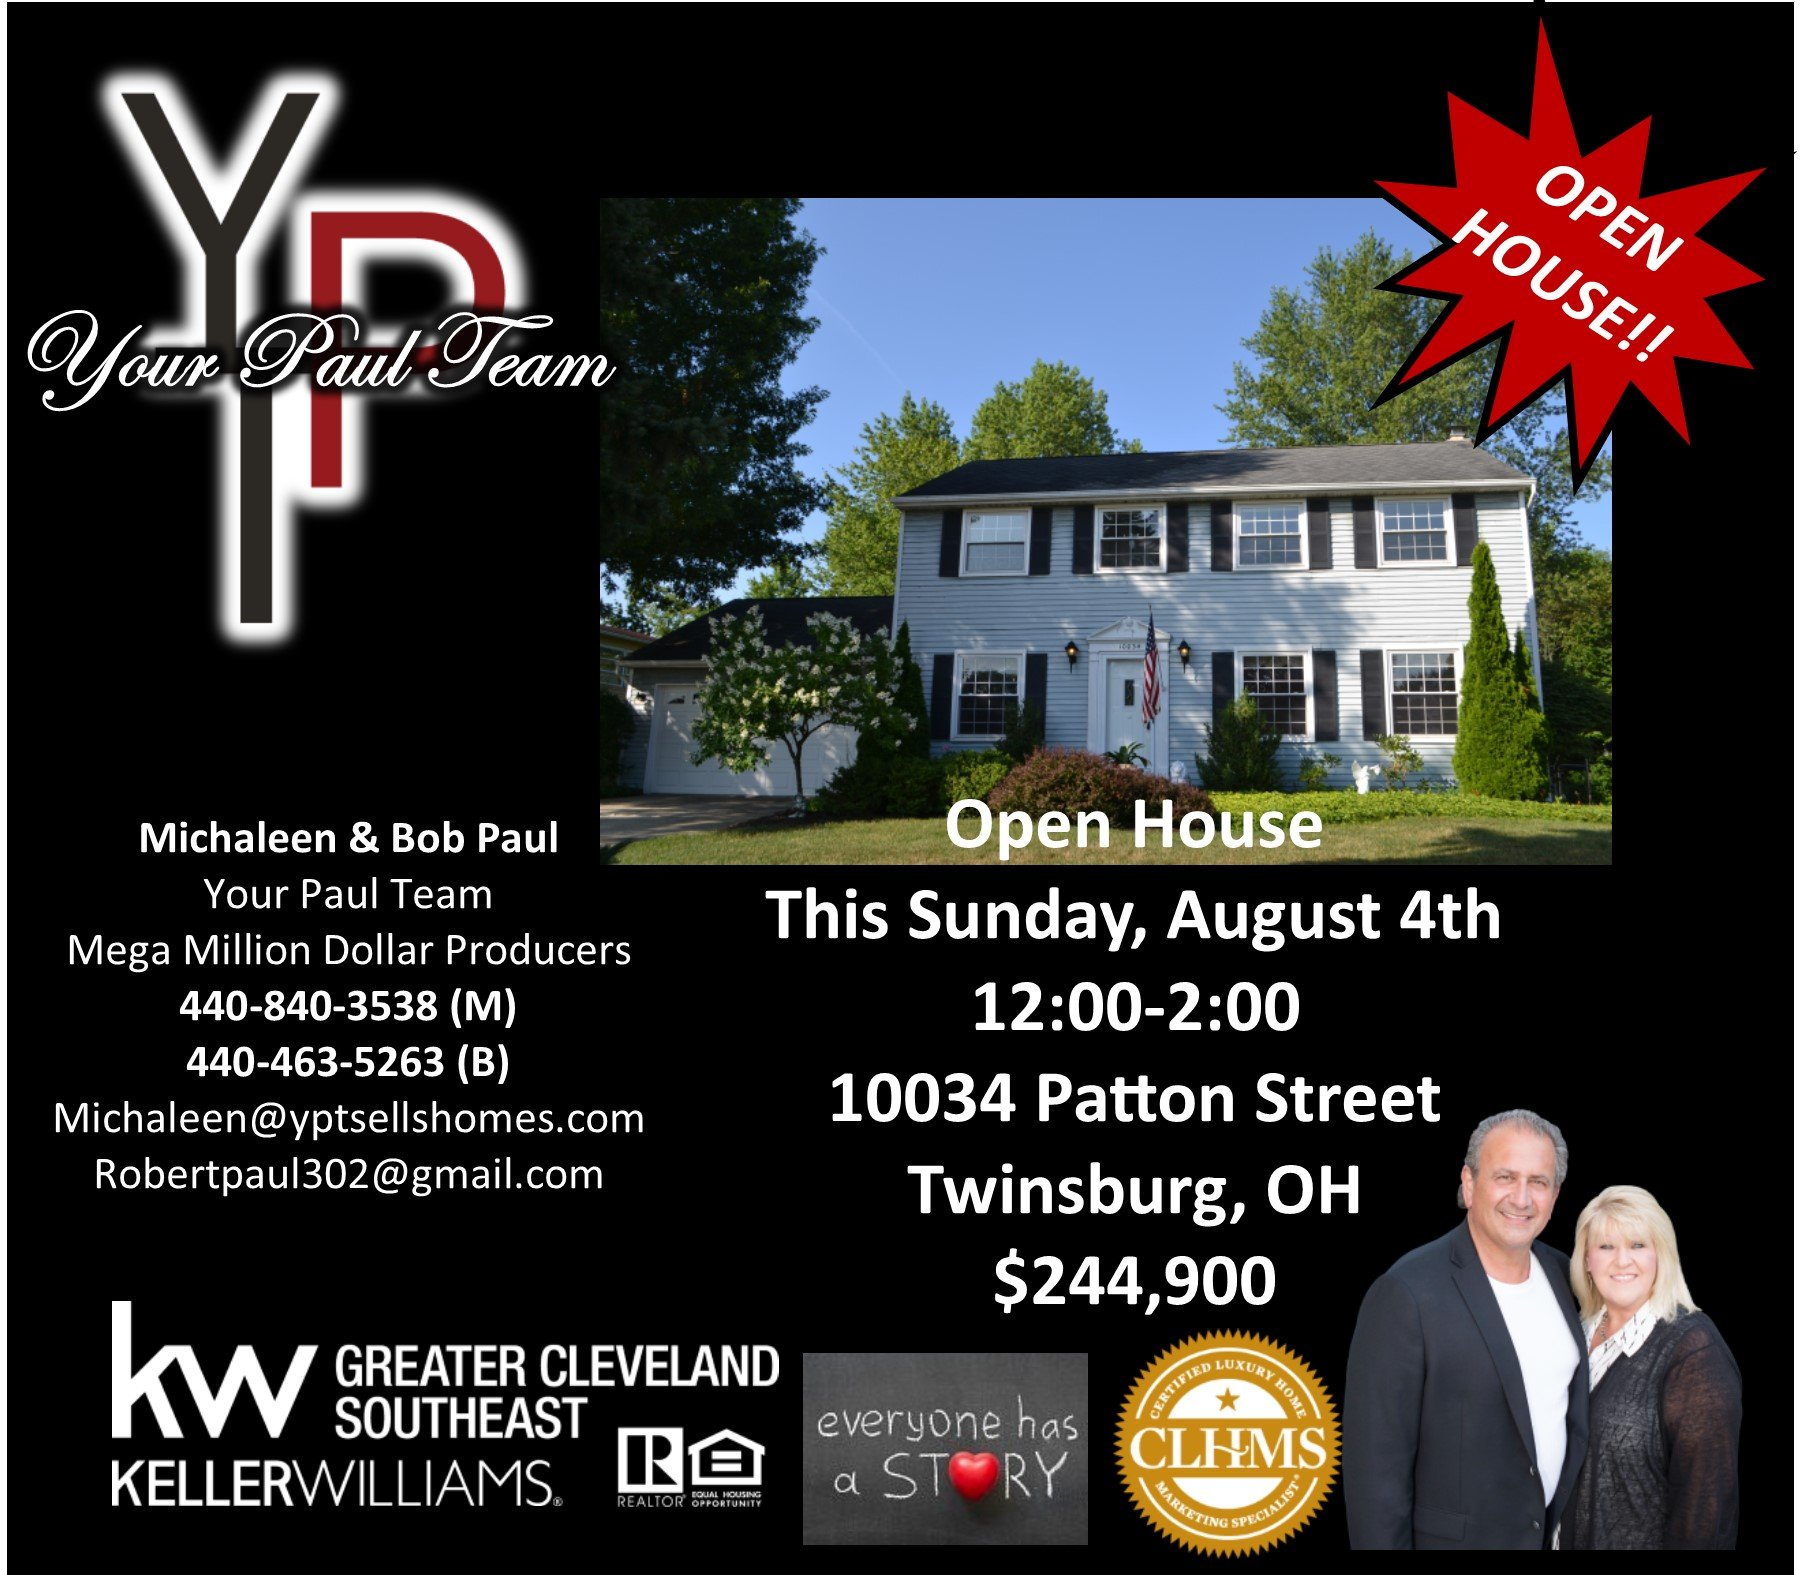 Open House this Sunday in Twinsburg!